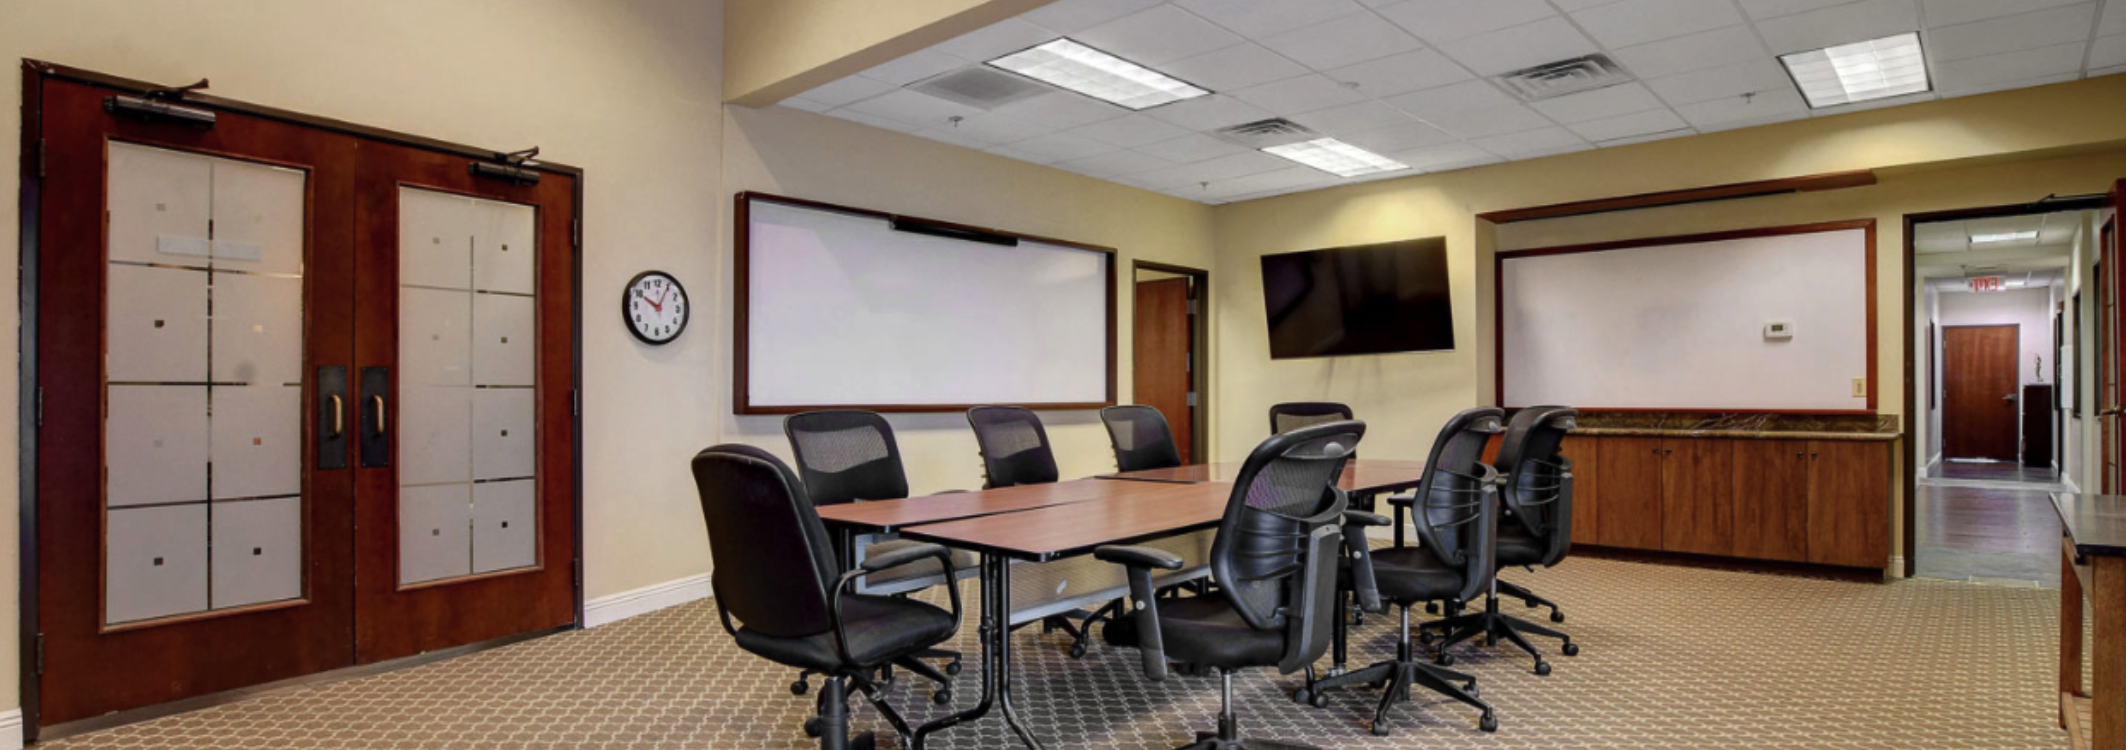 Conference Room at Lakeside Business Suites